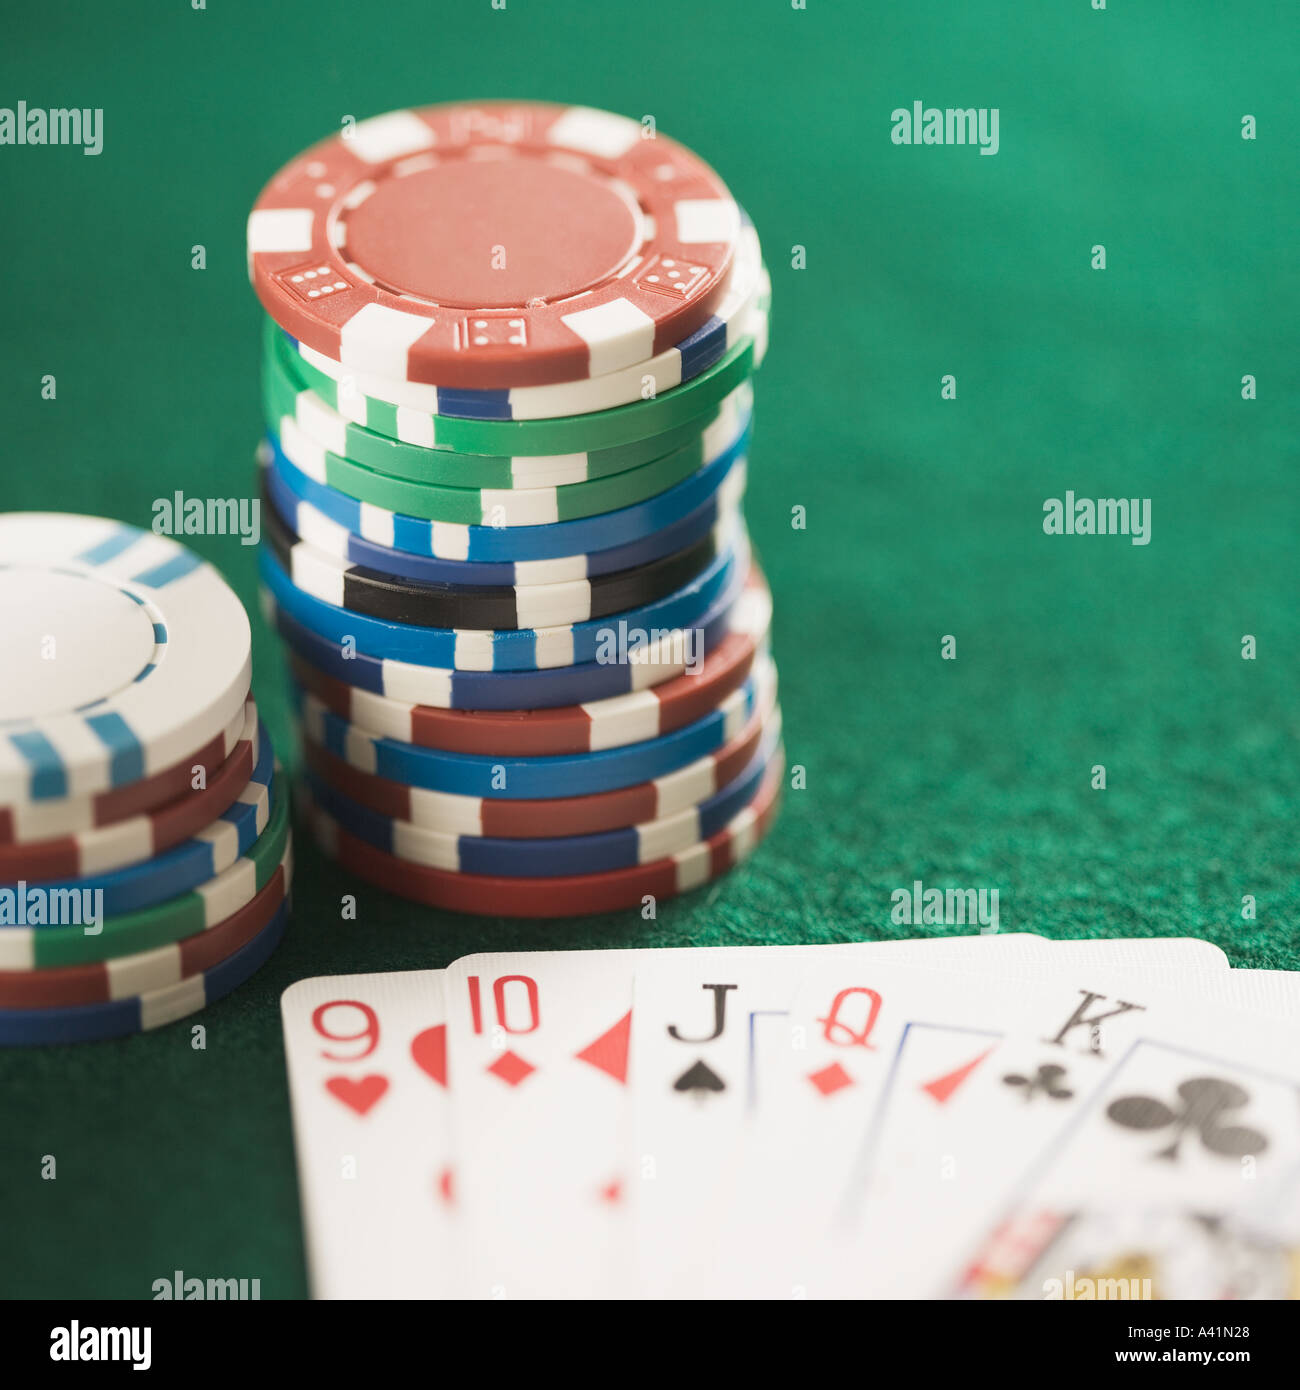 Still life of a poker game - Stock Image